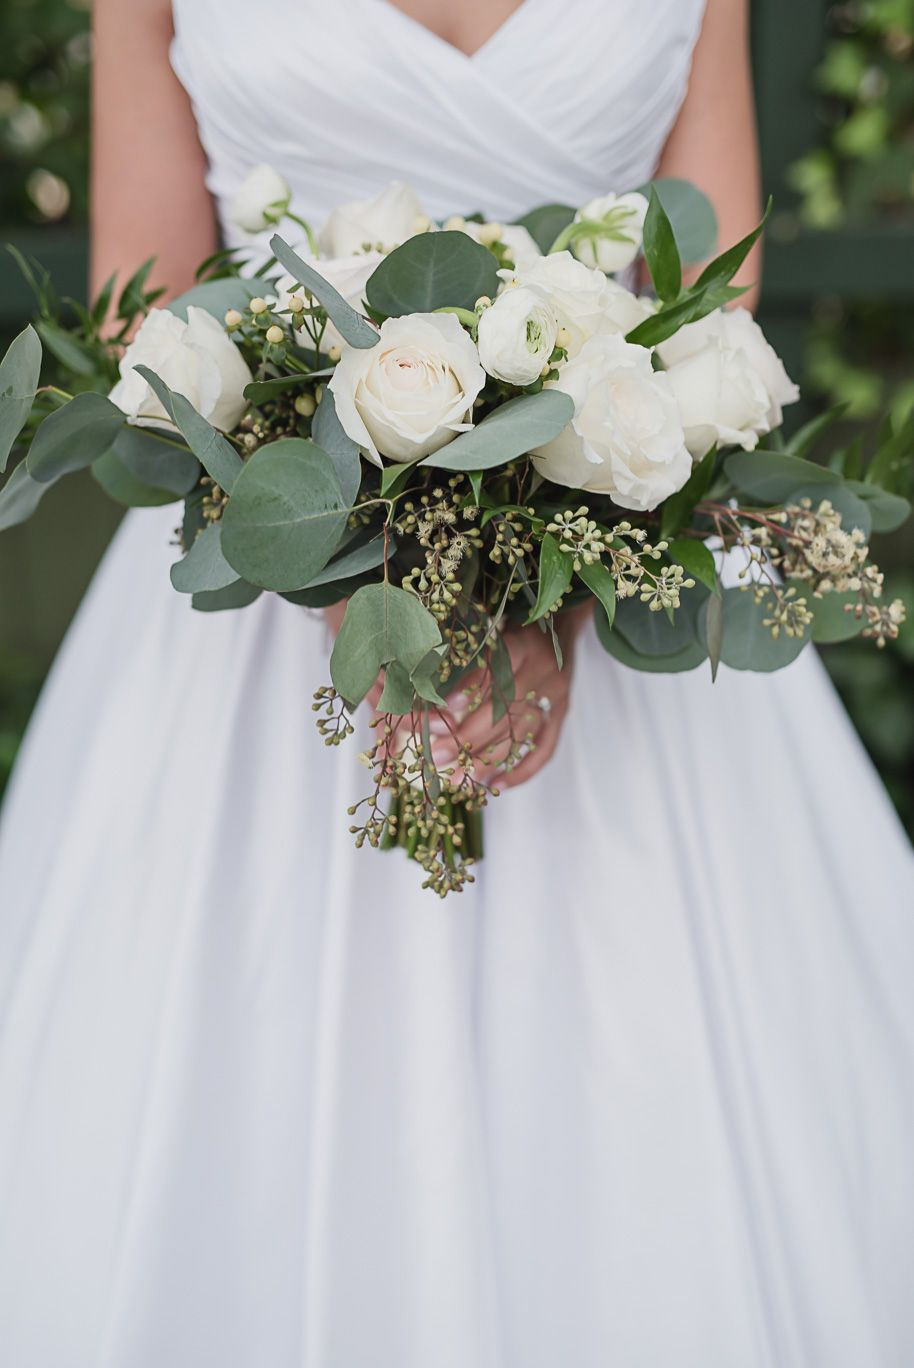 Michigan Winter Wedding At Planterra Conservatory White Roses